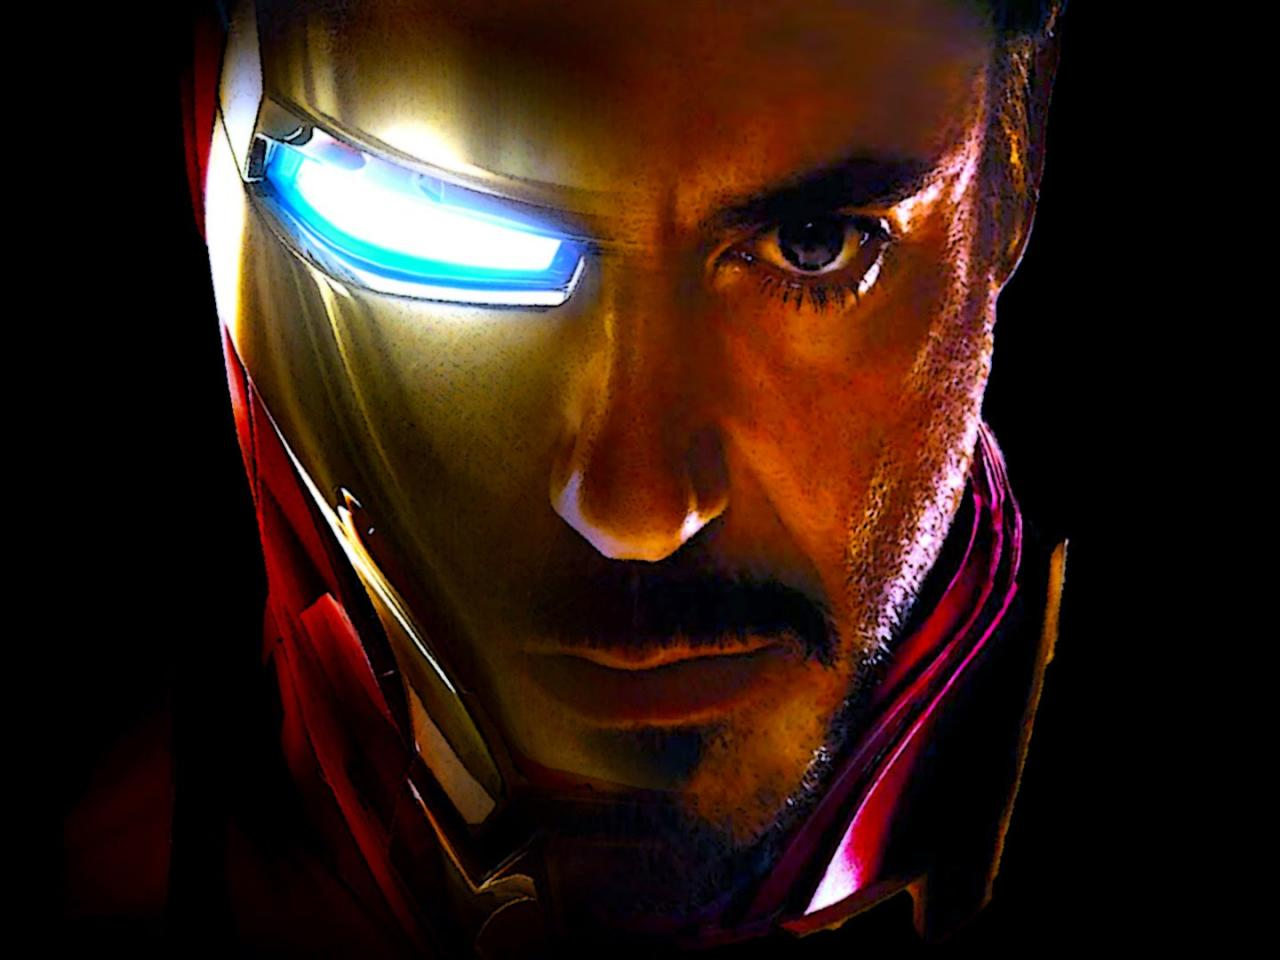 Iron Man Wallpaper 37 Pics HD Wallpapers Wallpapers 1280x960